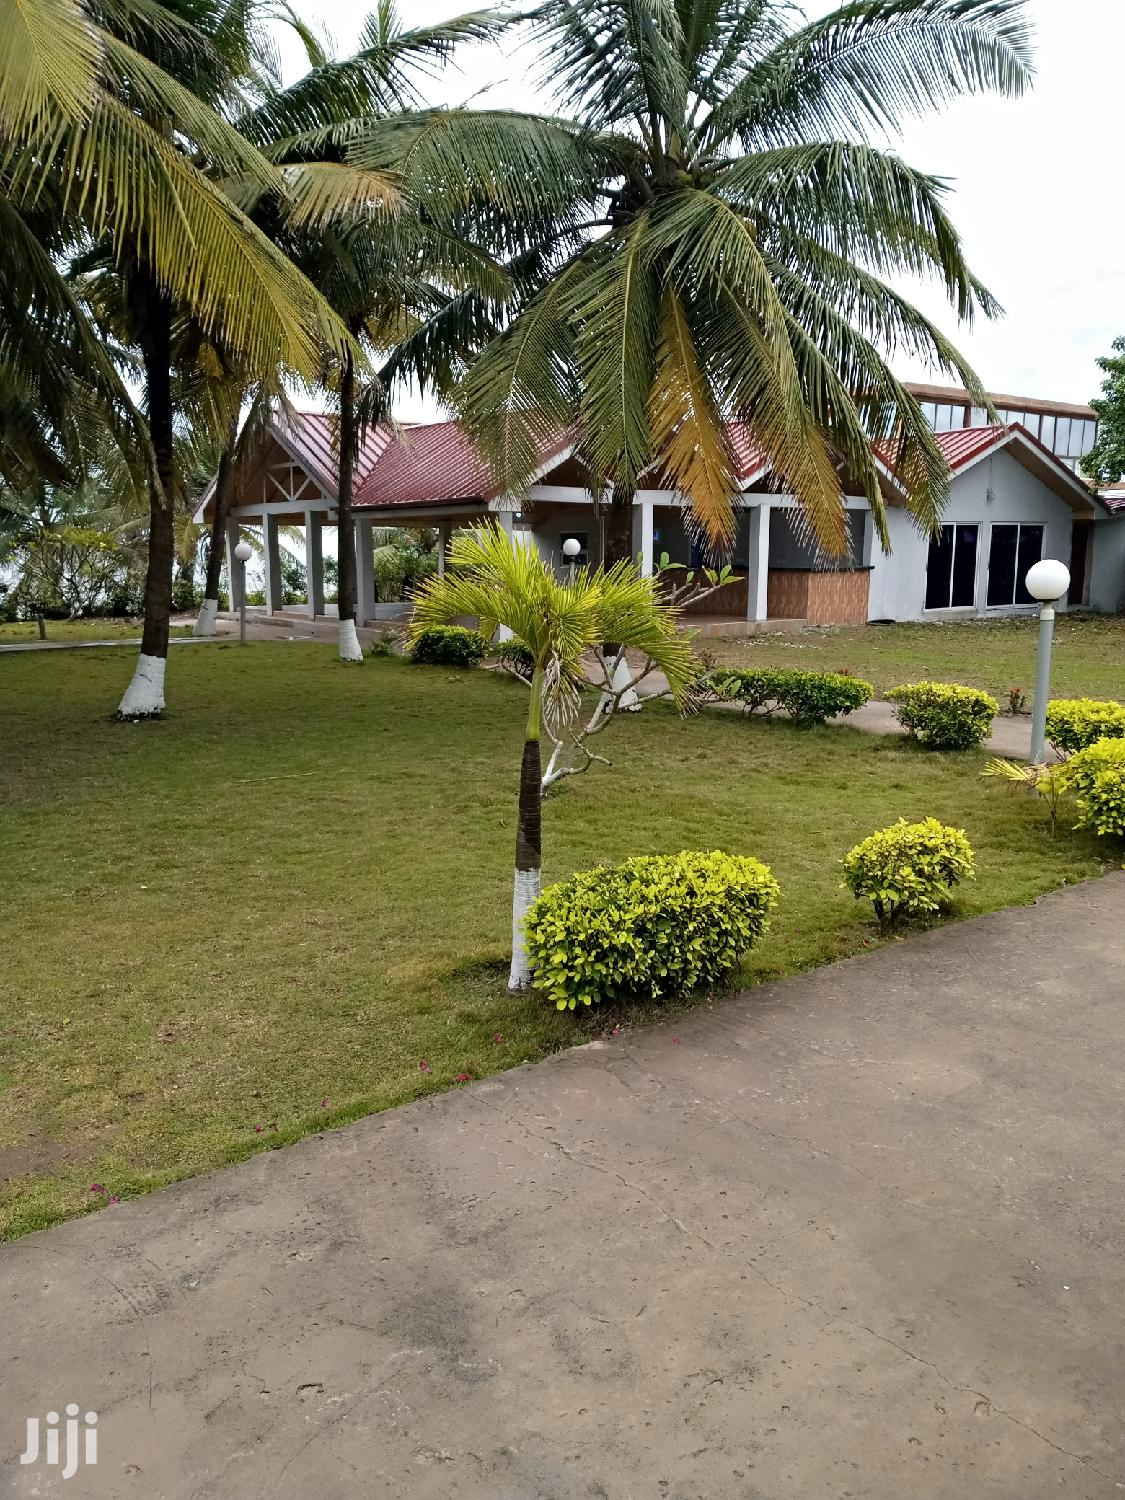 LA Plage Events Center | Event centres, Venues and Workstations for sale in Nungua East, Greater Accra, Ghana